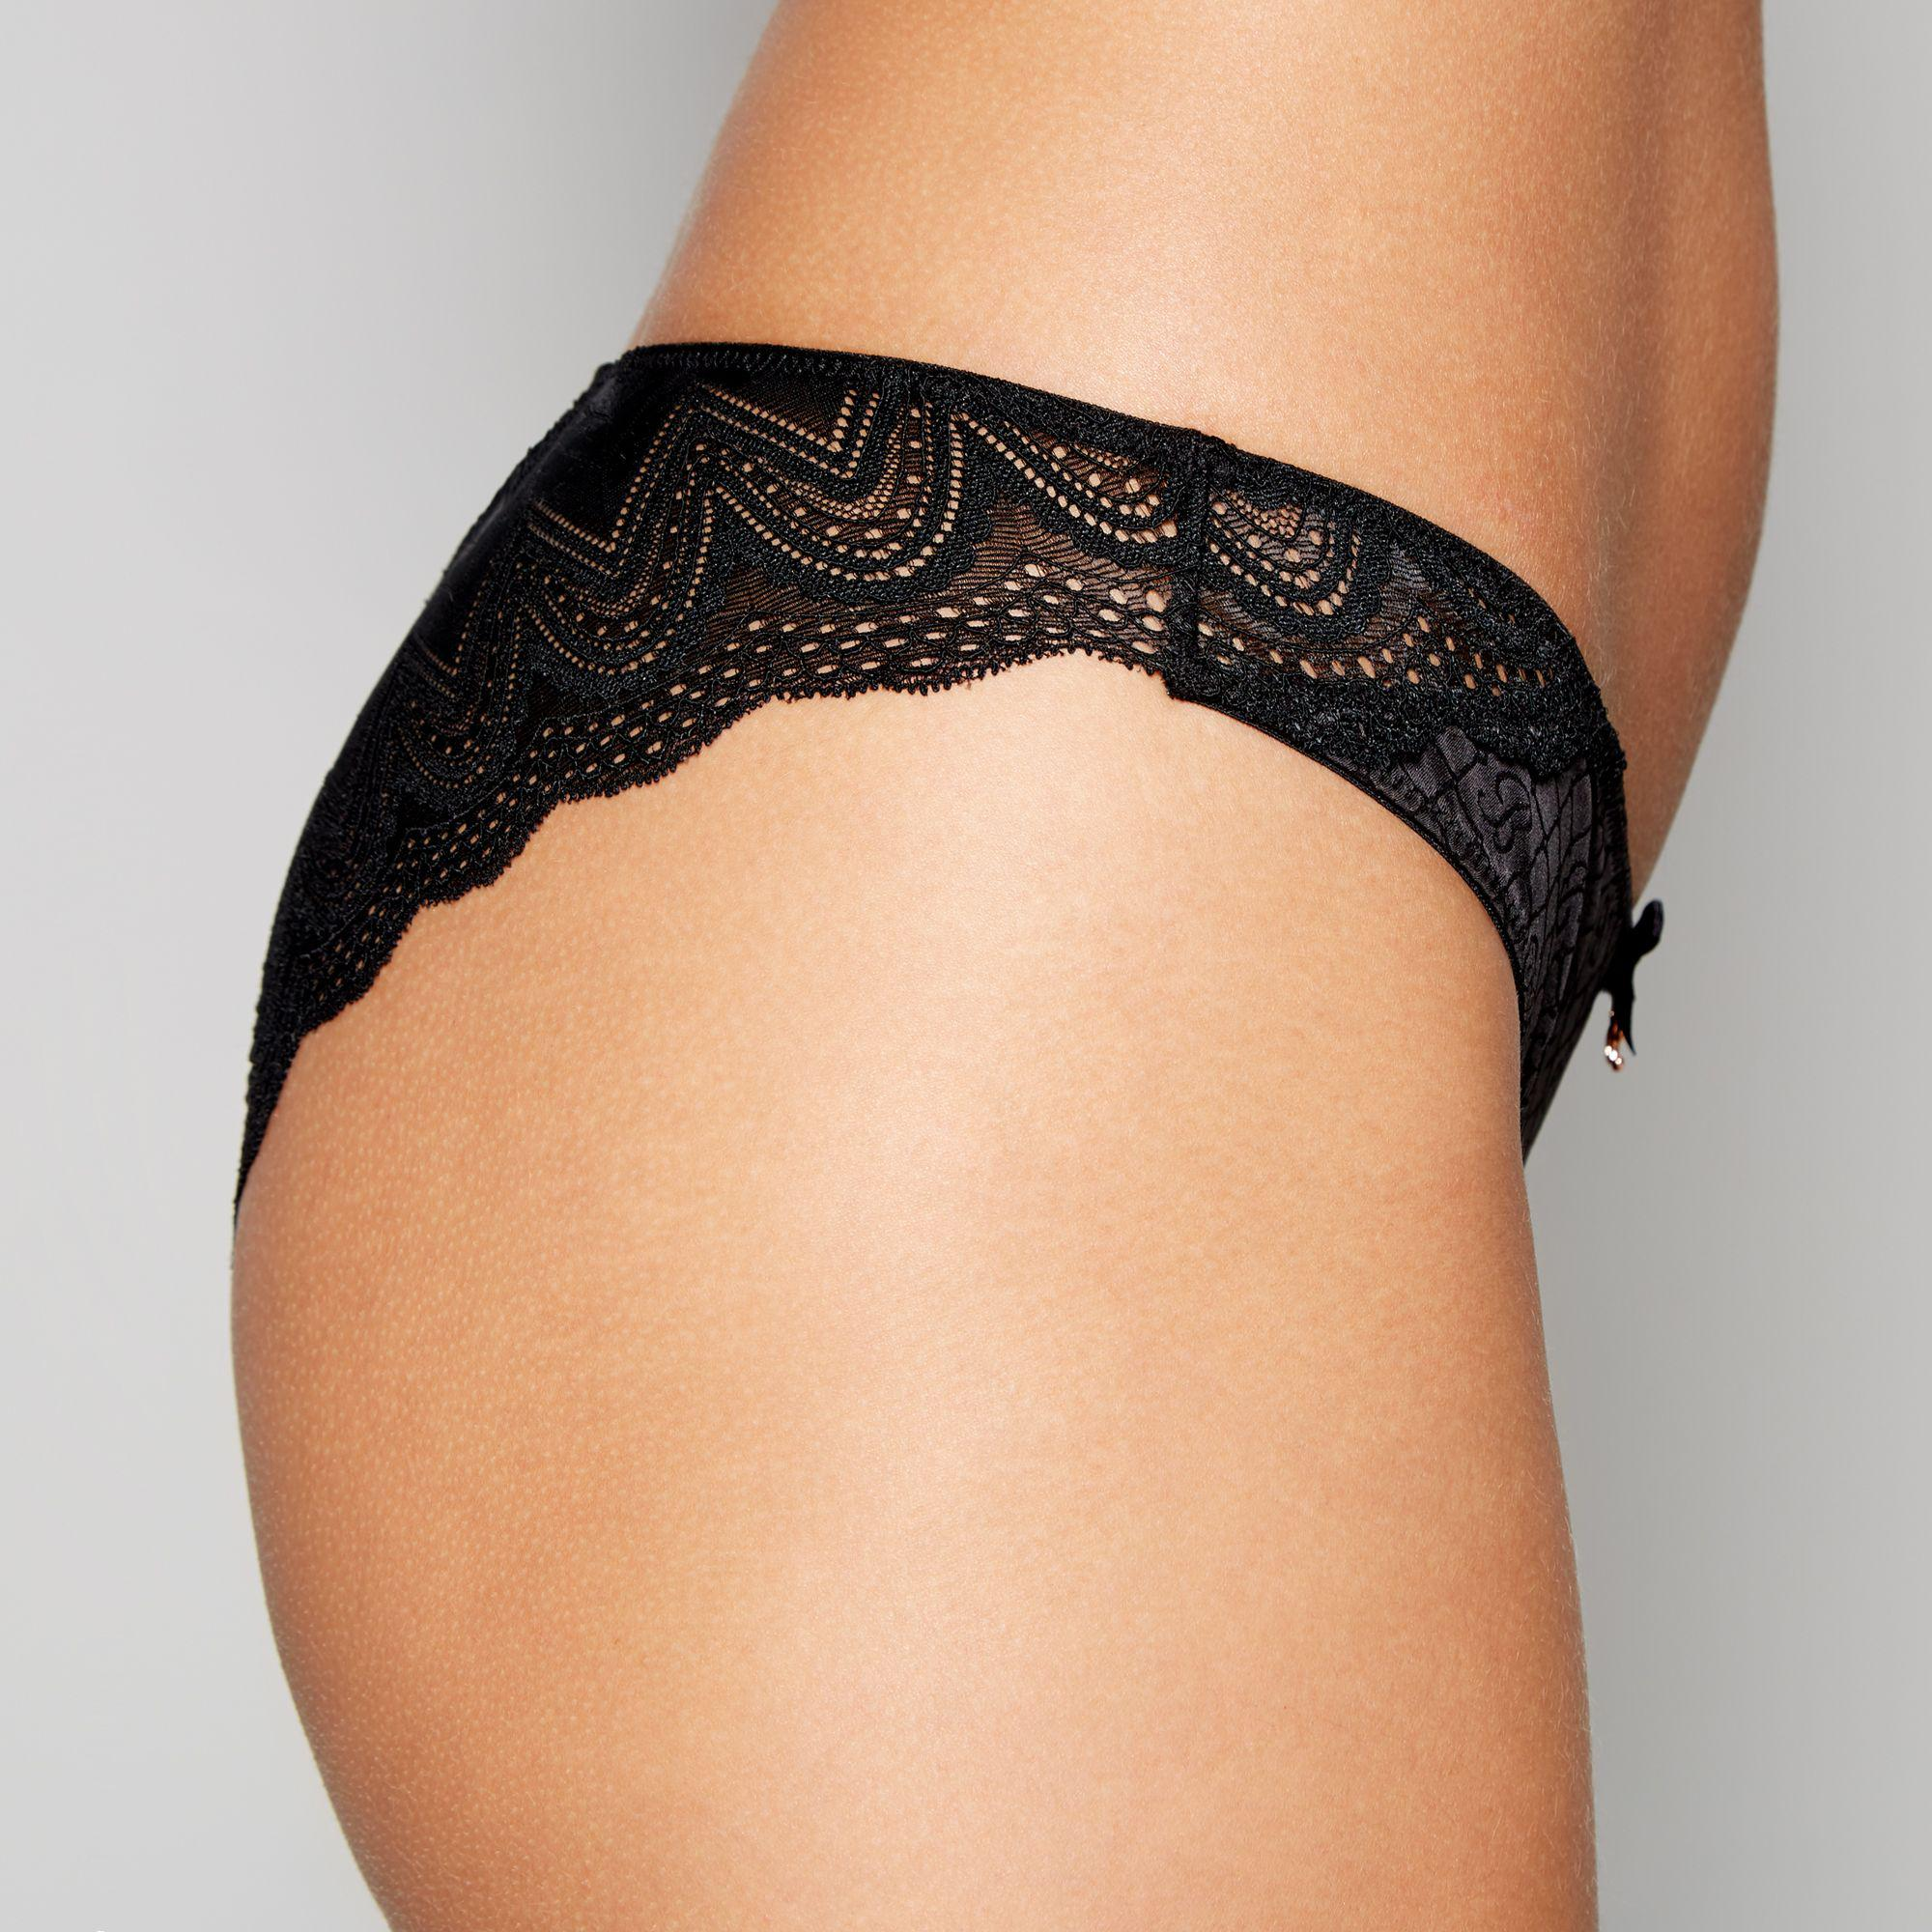 3cd7ea3b076a ... Ted Baker - Black Jacquard Satin Lace Brazilian Knickers - Lyst. Visit  Debenhams. Tap to visit site